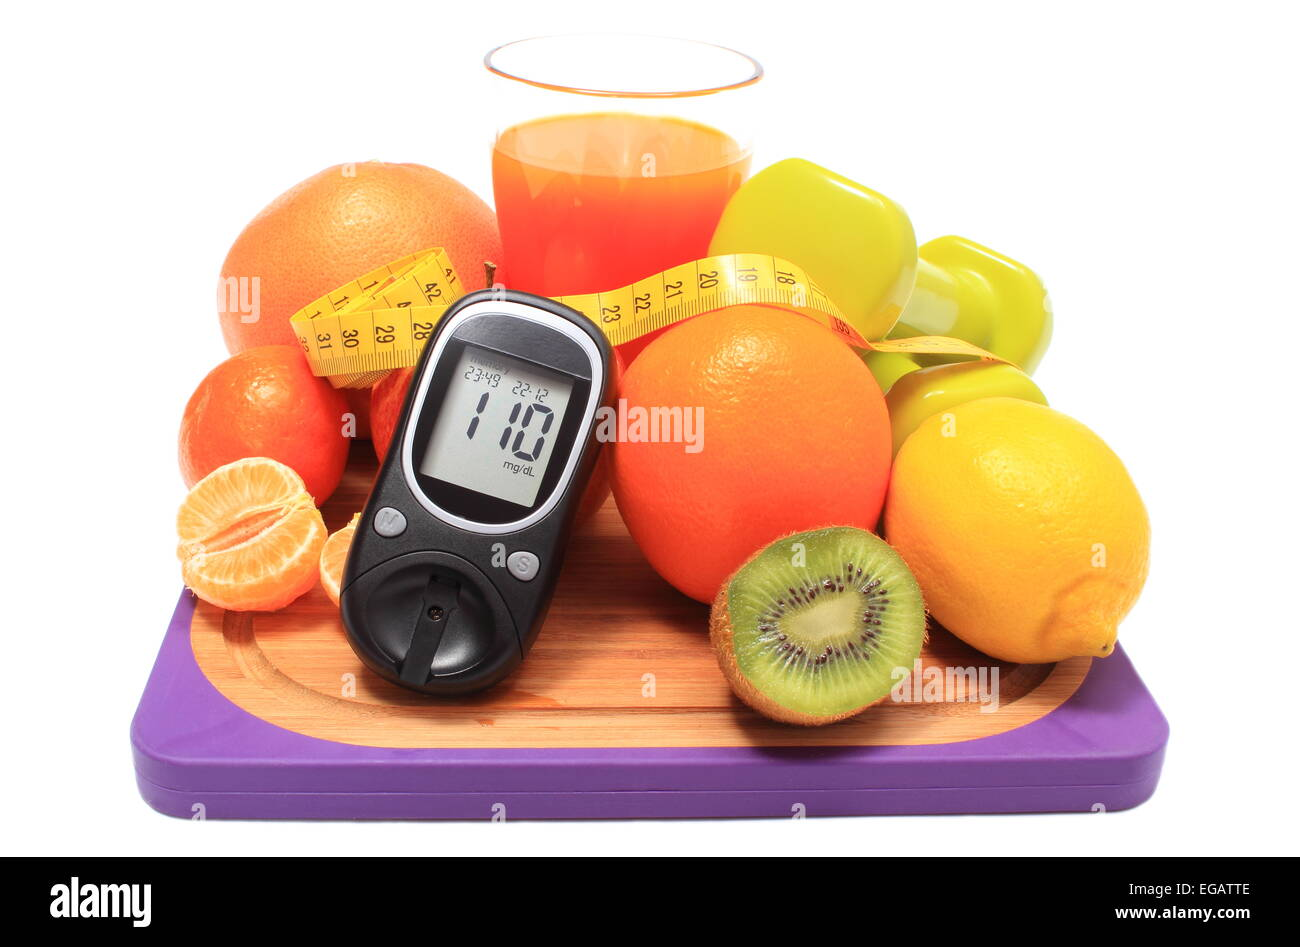 Glucometer. fresh fruits, dumbbells for using in fitness, tape measure and glass of juice, concept for diabetes, - Stock Image